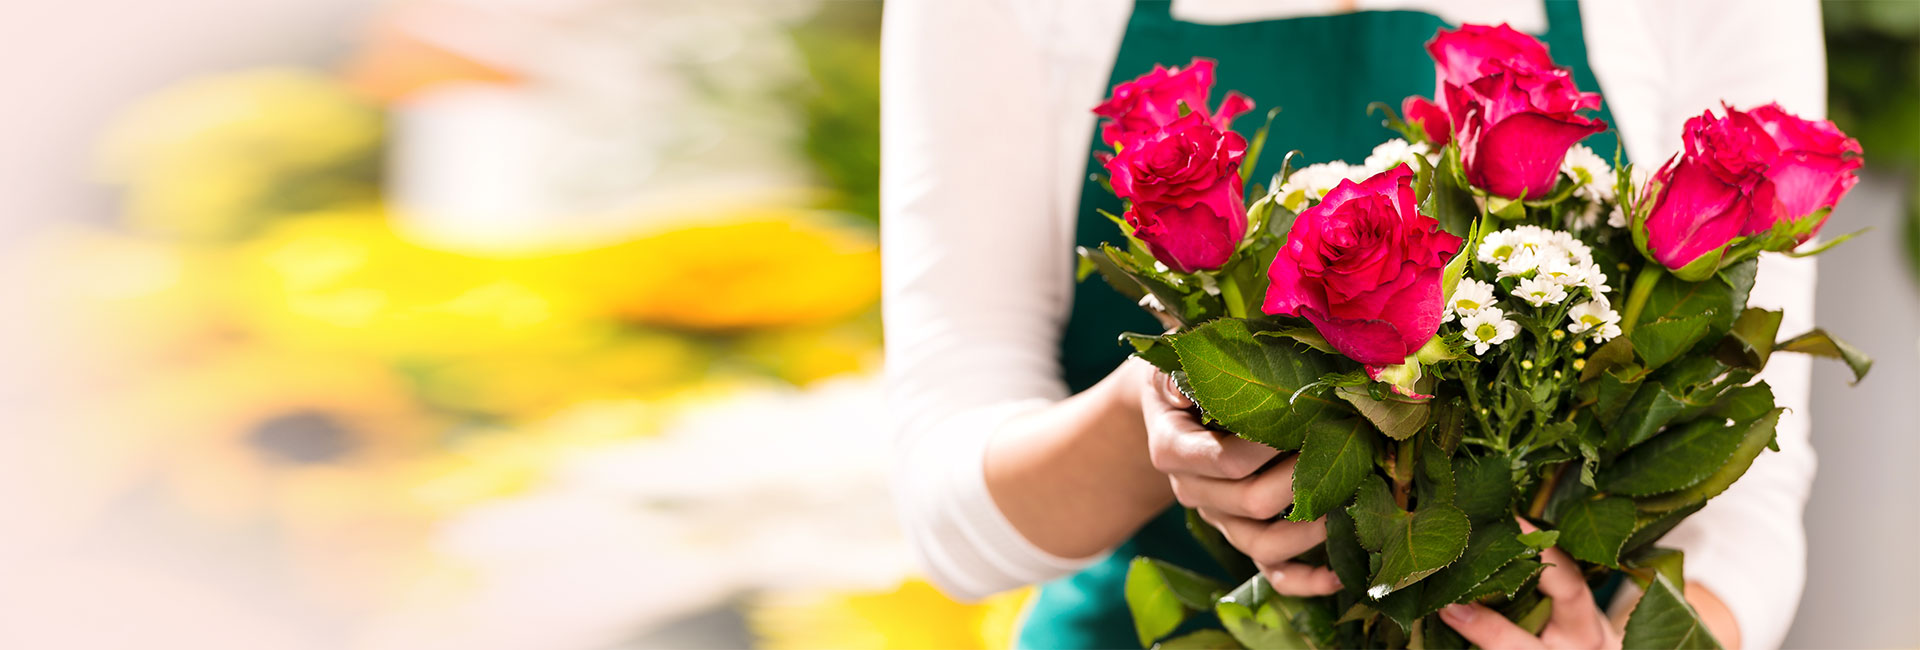 Turn An Ordinary Day Into Something Special With Personalized Floral Arrangements